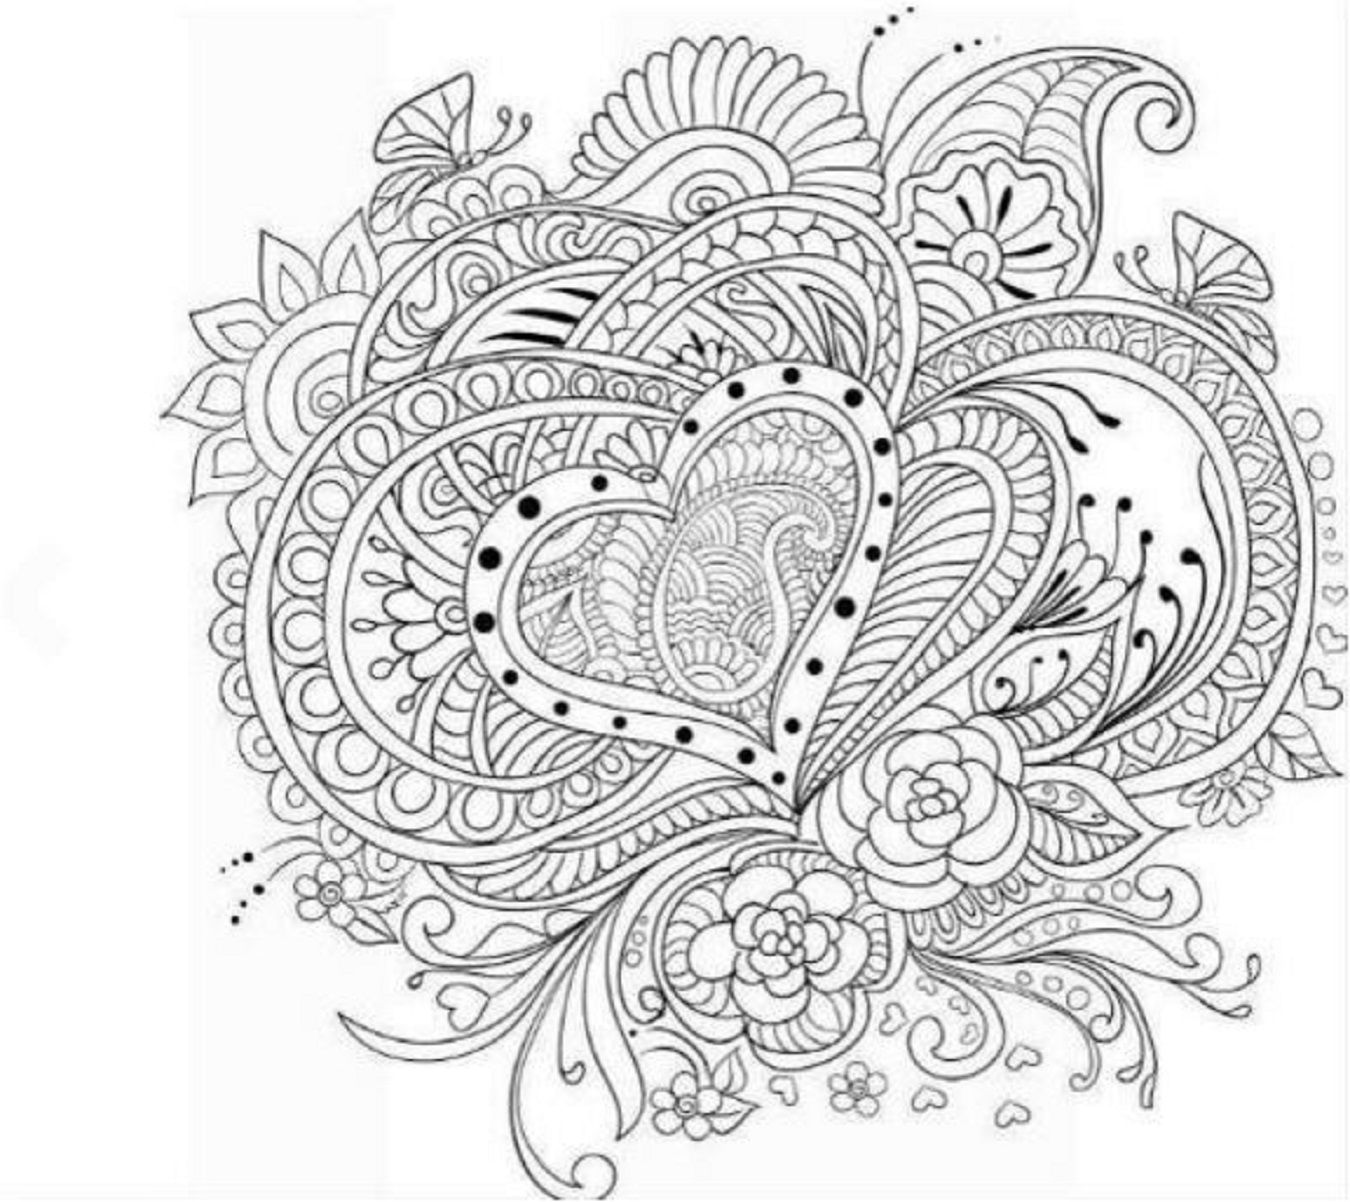 Coloring book color of art - Adults Coloring Book Art Love Heart Stress Relief Designs Color Fun Patterns